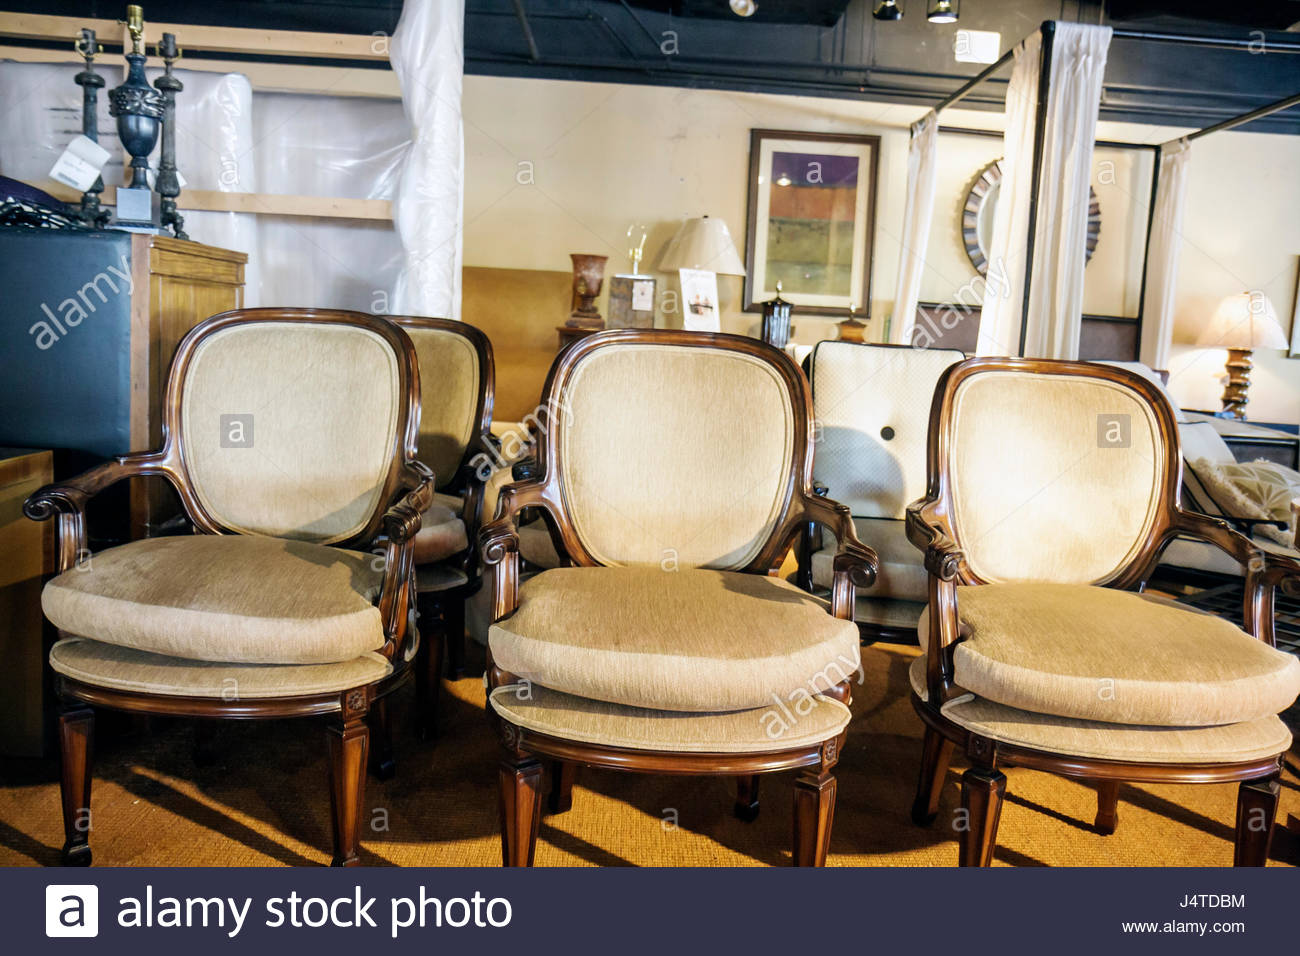 Furniture stores in miami florida - Miami Coral Gables Miami Florida Kreiss Furniture Store Retail Family Business Showroom Chair Upholstery Plush Beige